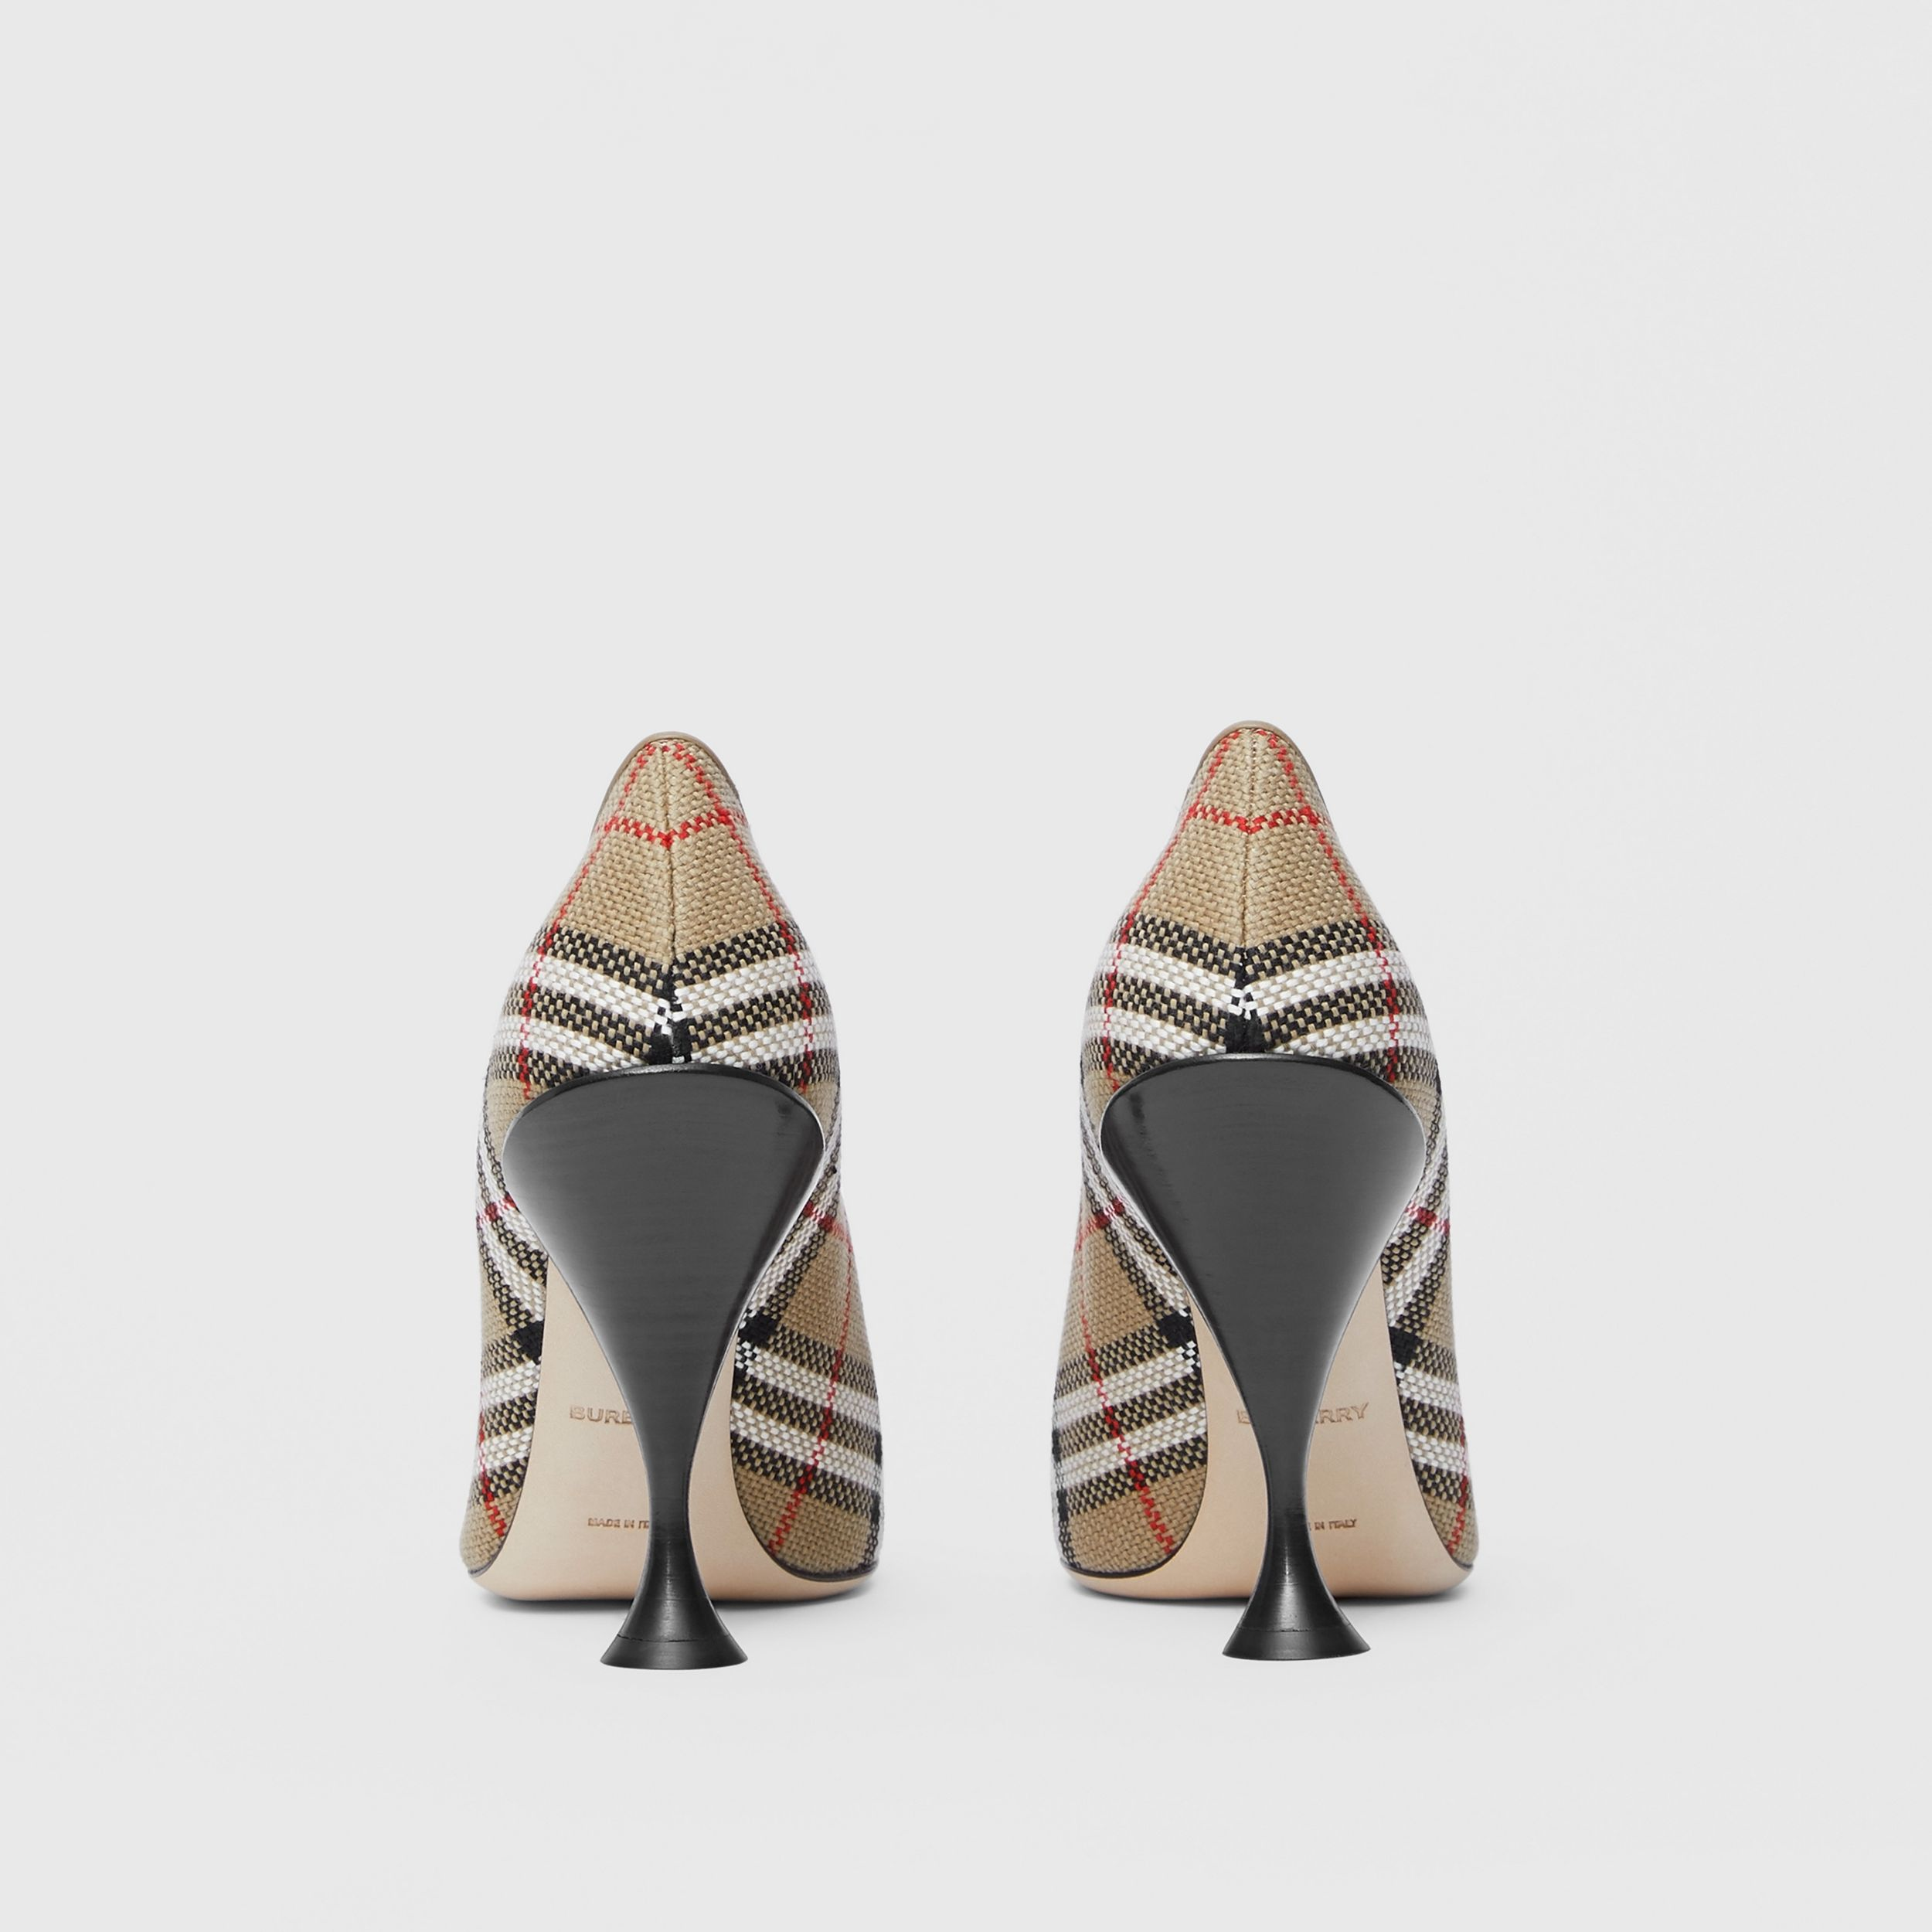 Latticed Cotton Square-toe Pumps in Archive Beige - Women | Burberry Canada - 4